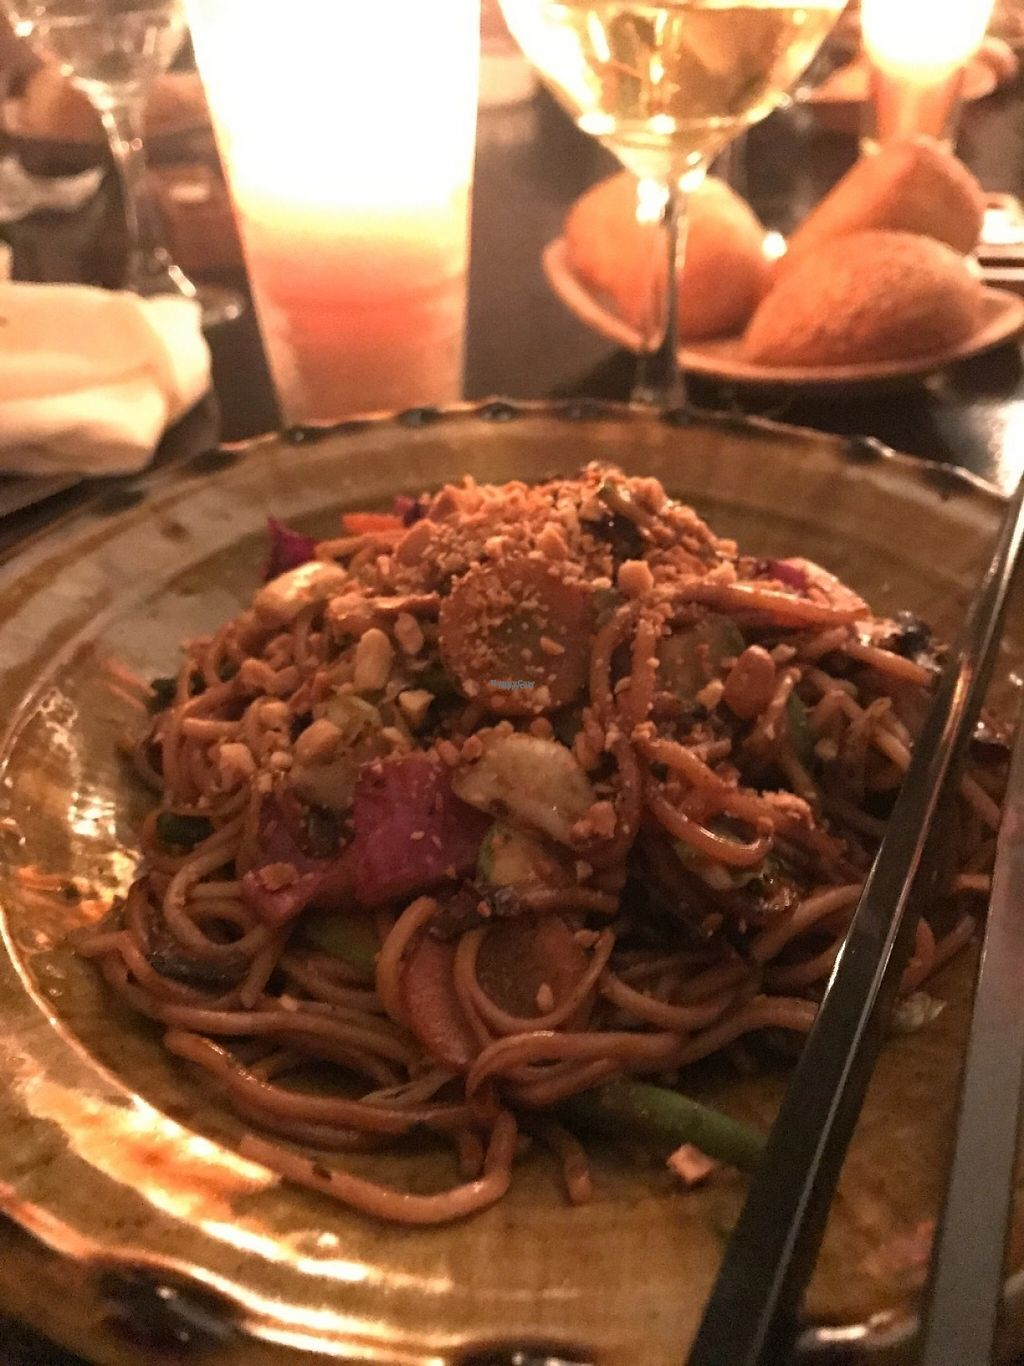 """Photo of Bo & Zin Marrakech  by <a href=""""/members/profile/YasmineBerrahou"""">YasmineBerrahou</a> <br/>Veggie noodles with amazing peanut sauce !  <br/> February 13, 2017  - <a href='/contact/abuse/image/85331/226203'>Report</a>"""